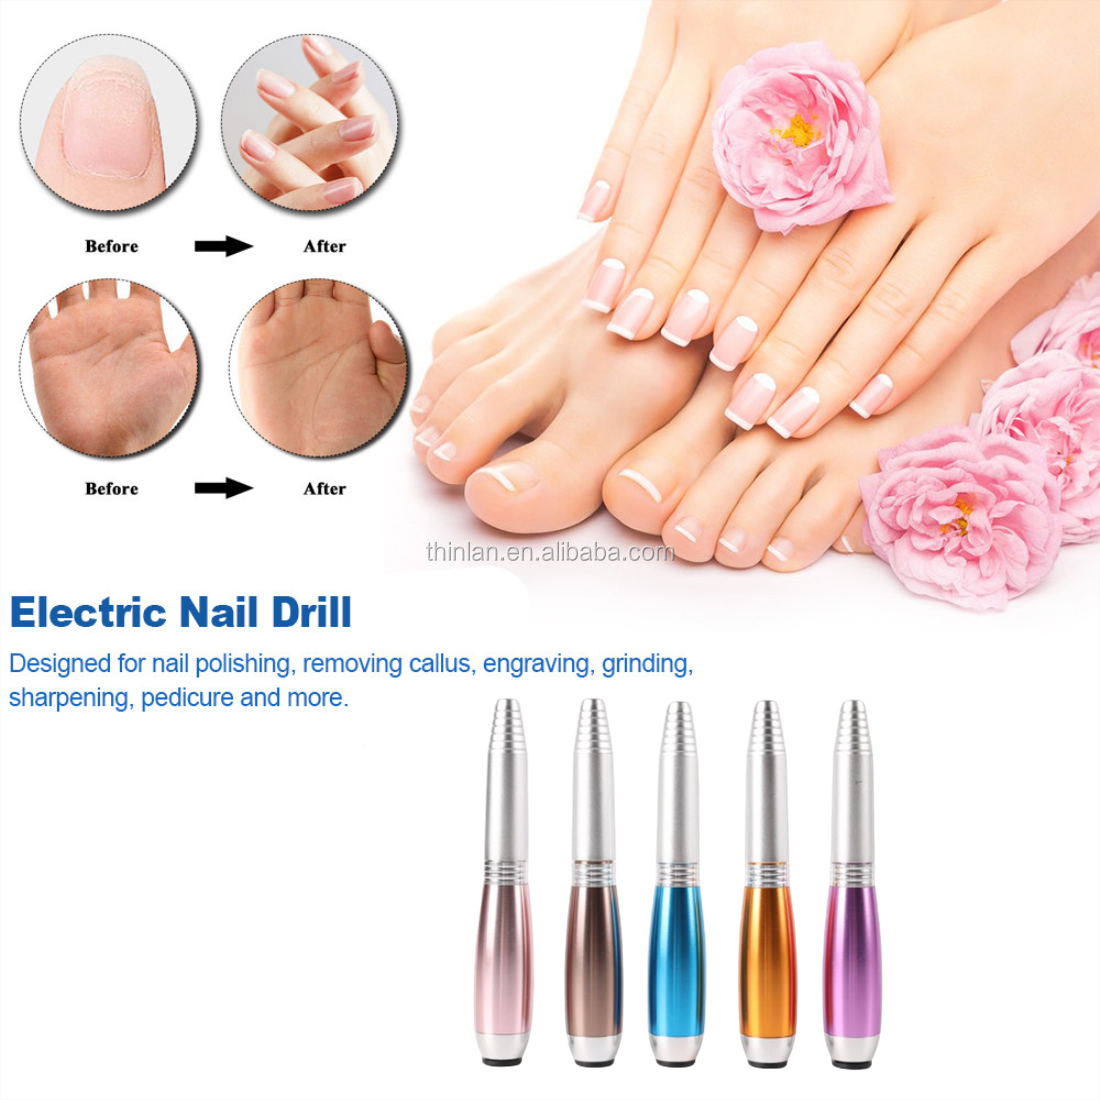 Top Sale Portable Pen-shape 200000 Mini Electronic Nail Drill with 12w Cordless Electric Nail Drill